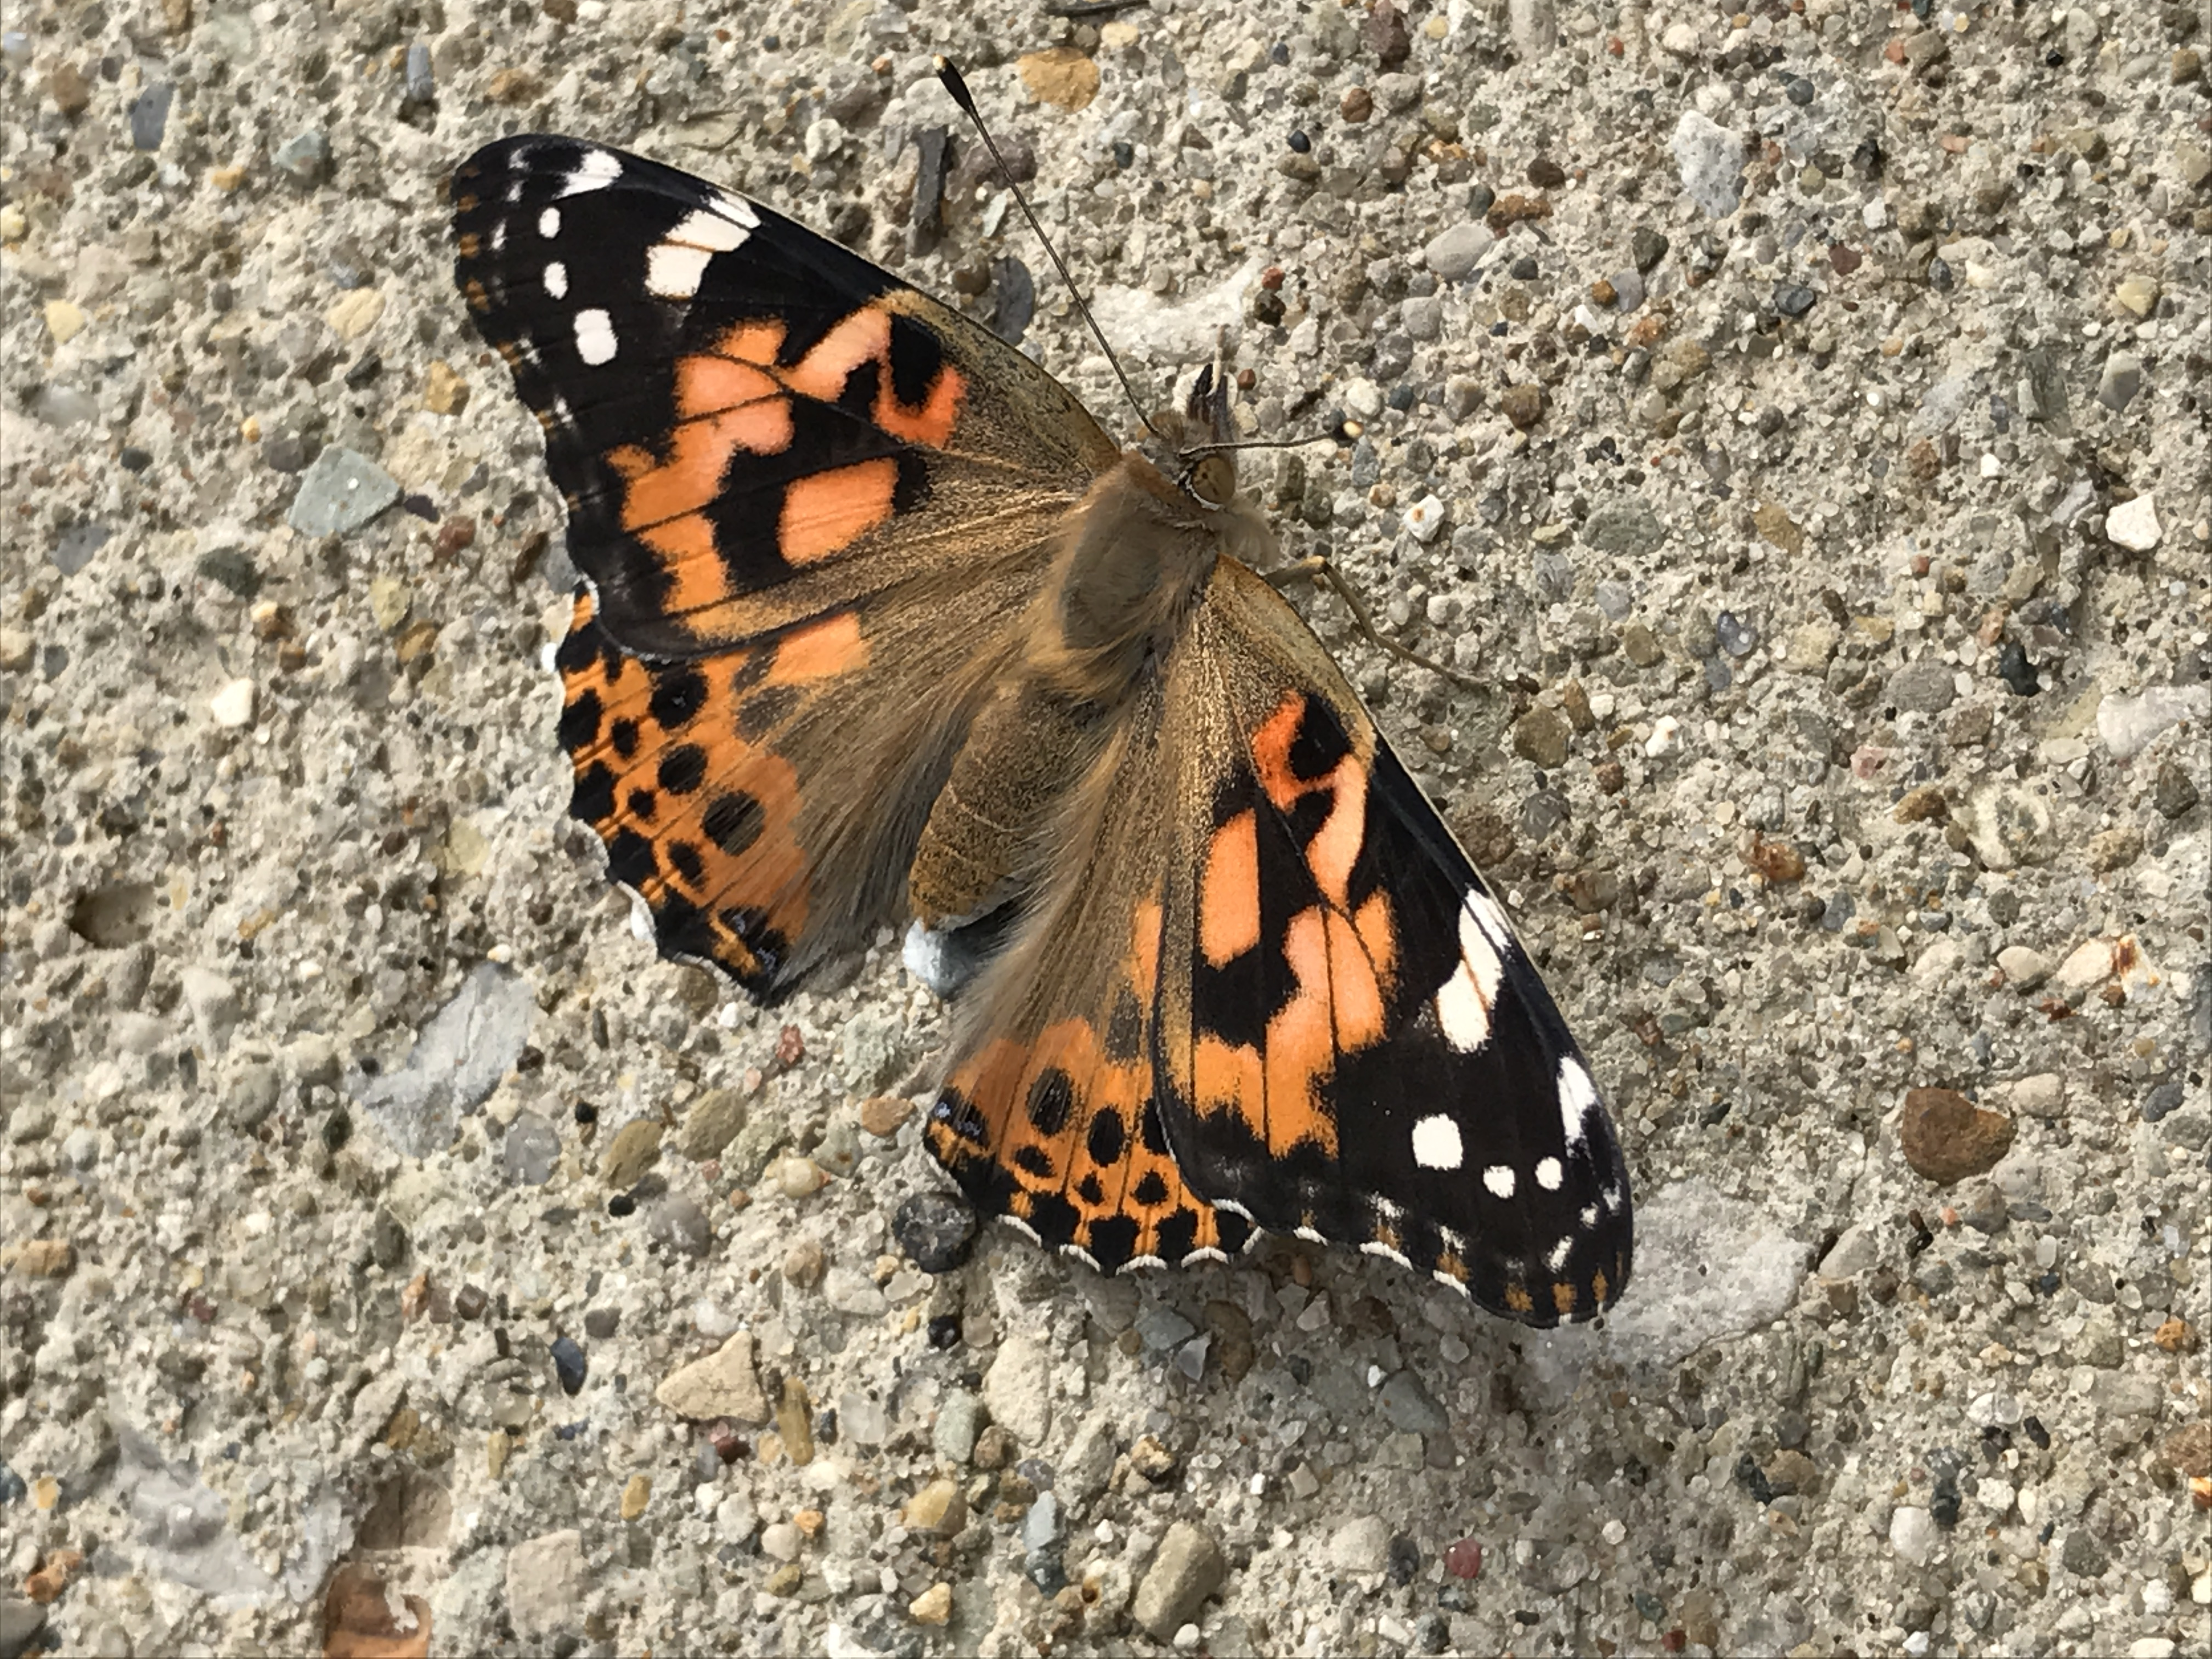 Lessons from the Butterfly